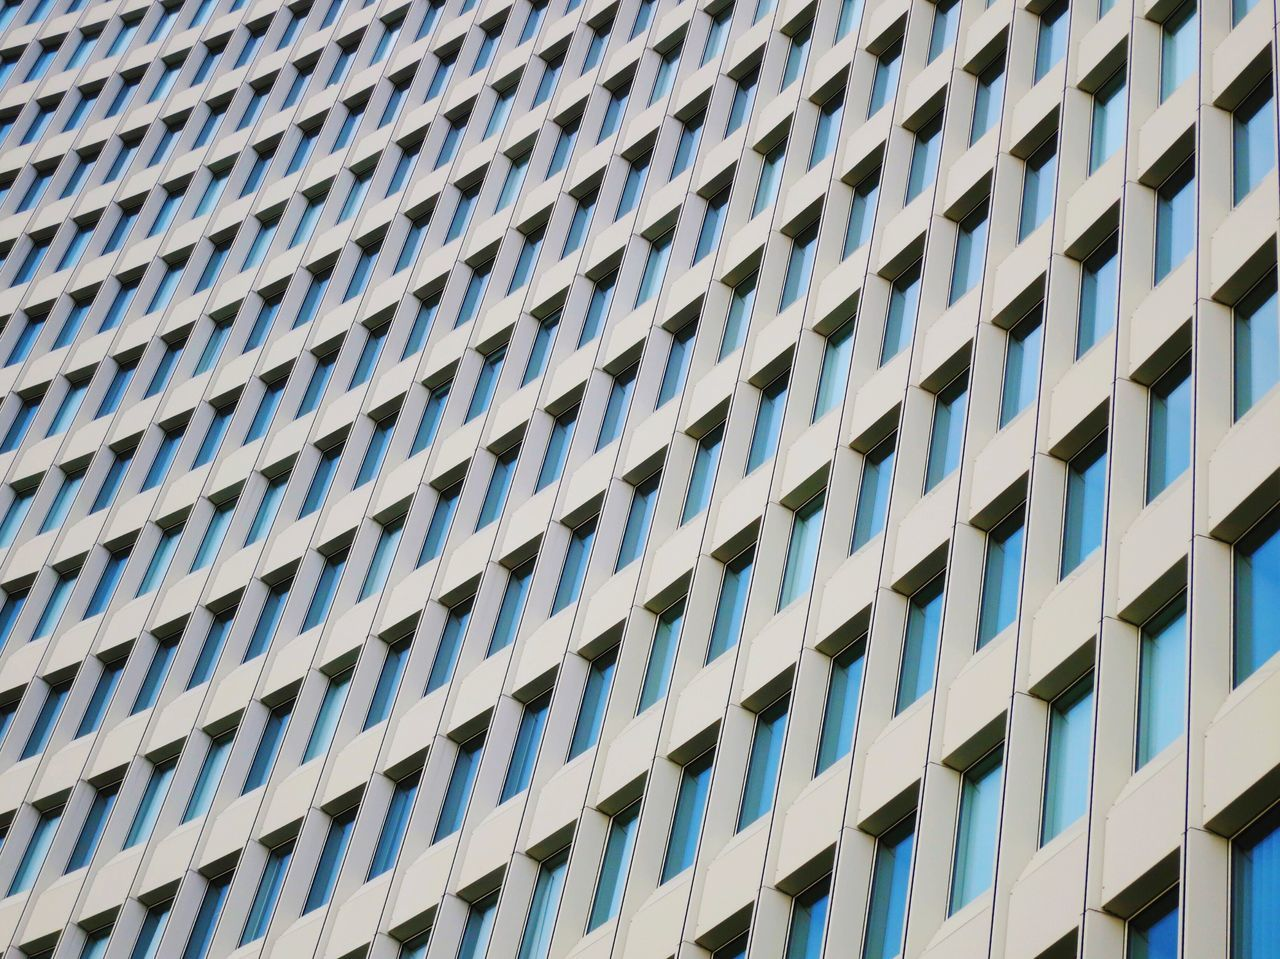 Architectural Feature Architecture Architecture Architecture_collection Backgrounds Building Exterior Built Structure City Full Frame Growth Low Angle View Minimal Minimalism Minimalist Architecture Modern No People Outdoors Pattern Pattern Pieces Pattern, Texture, Shape And Form Repetition Urban Geometry Urban Landscape